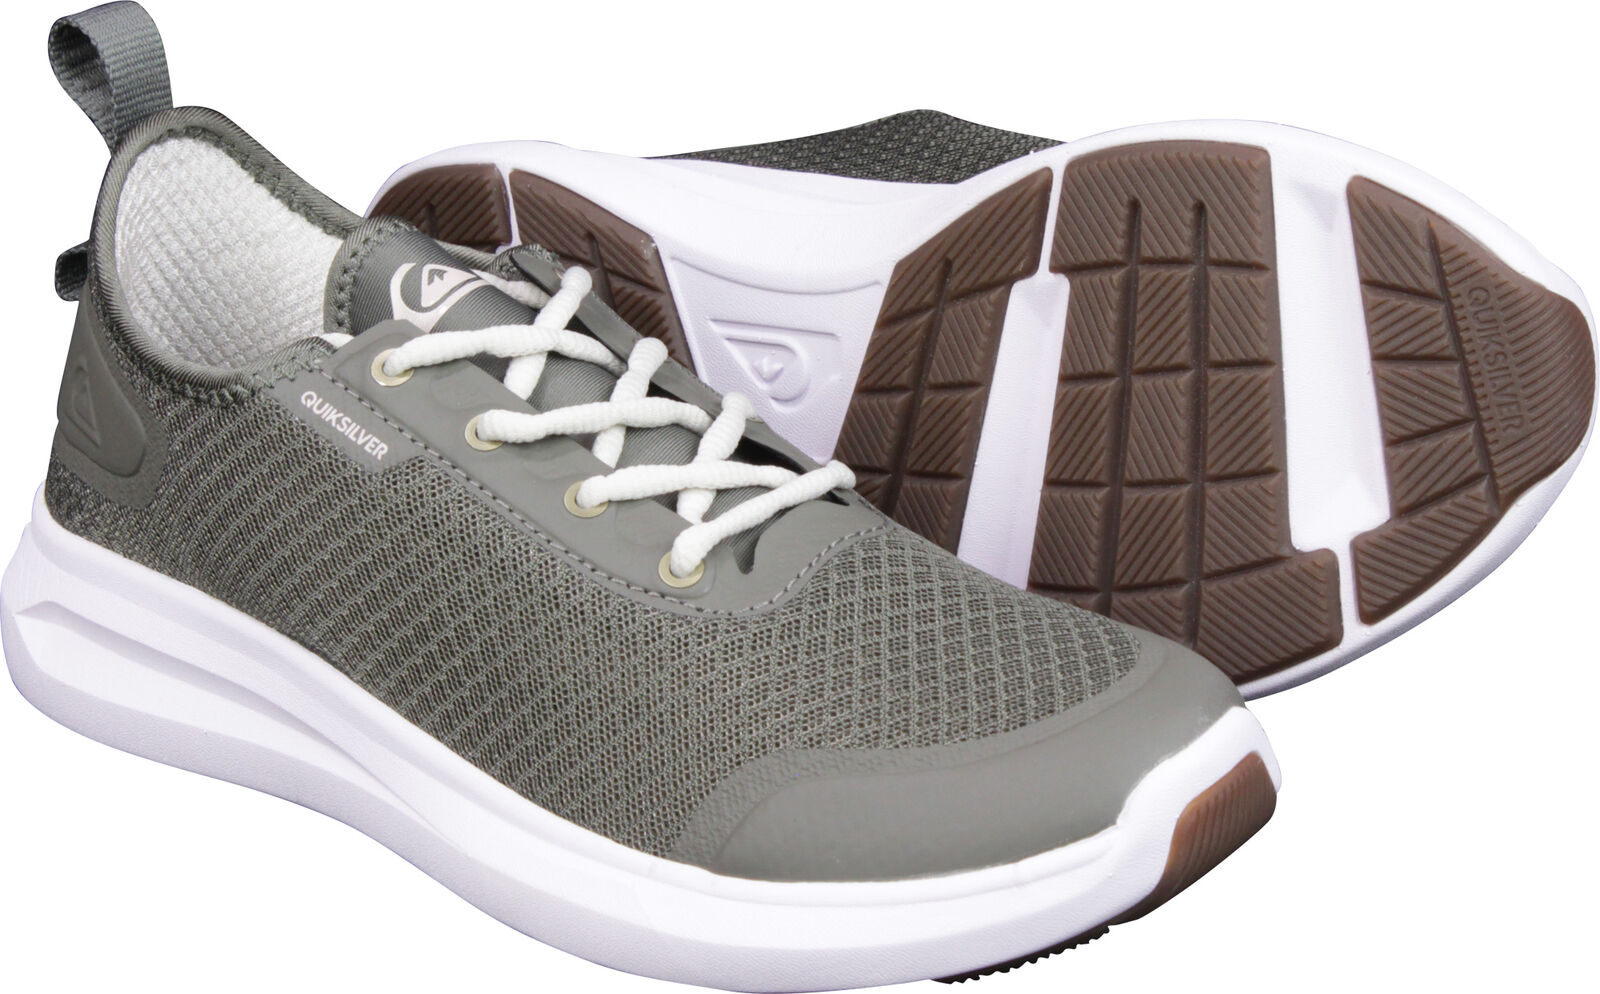 Quiksilver Mens Layover Travel shoess - Green White